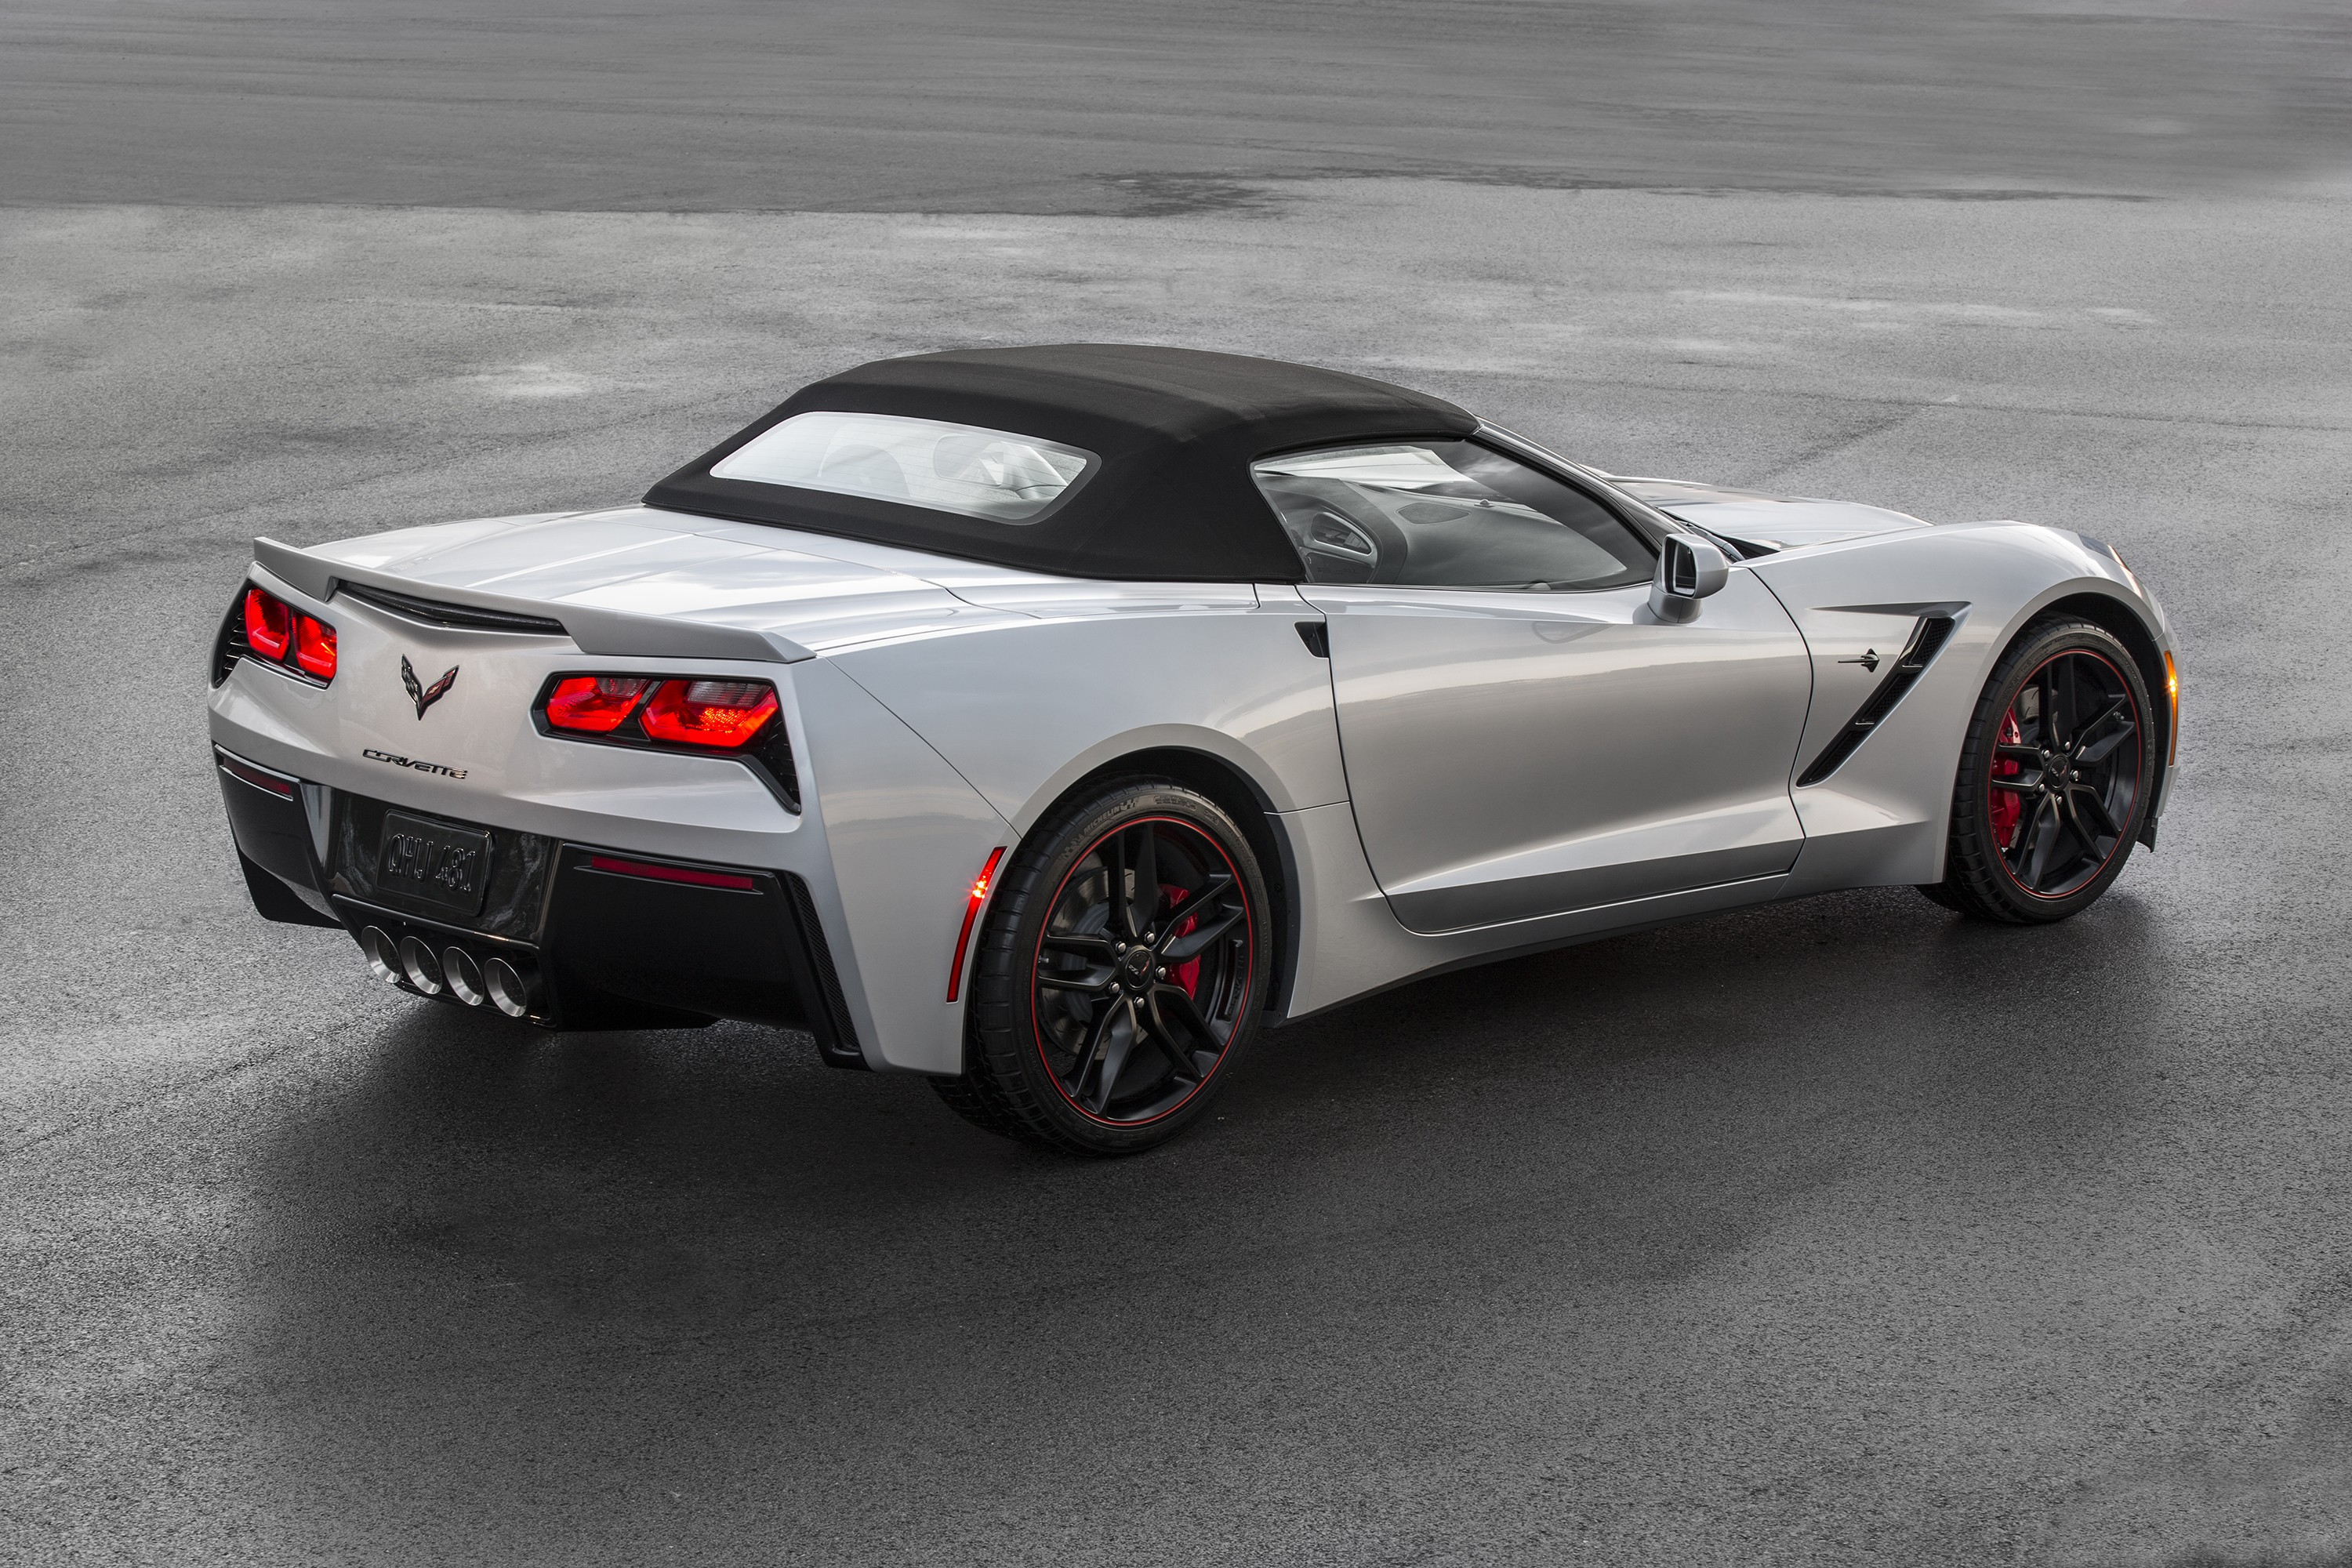 2016 Corvette Stingray Brings Small Yet Effective Updates